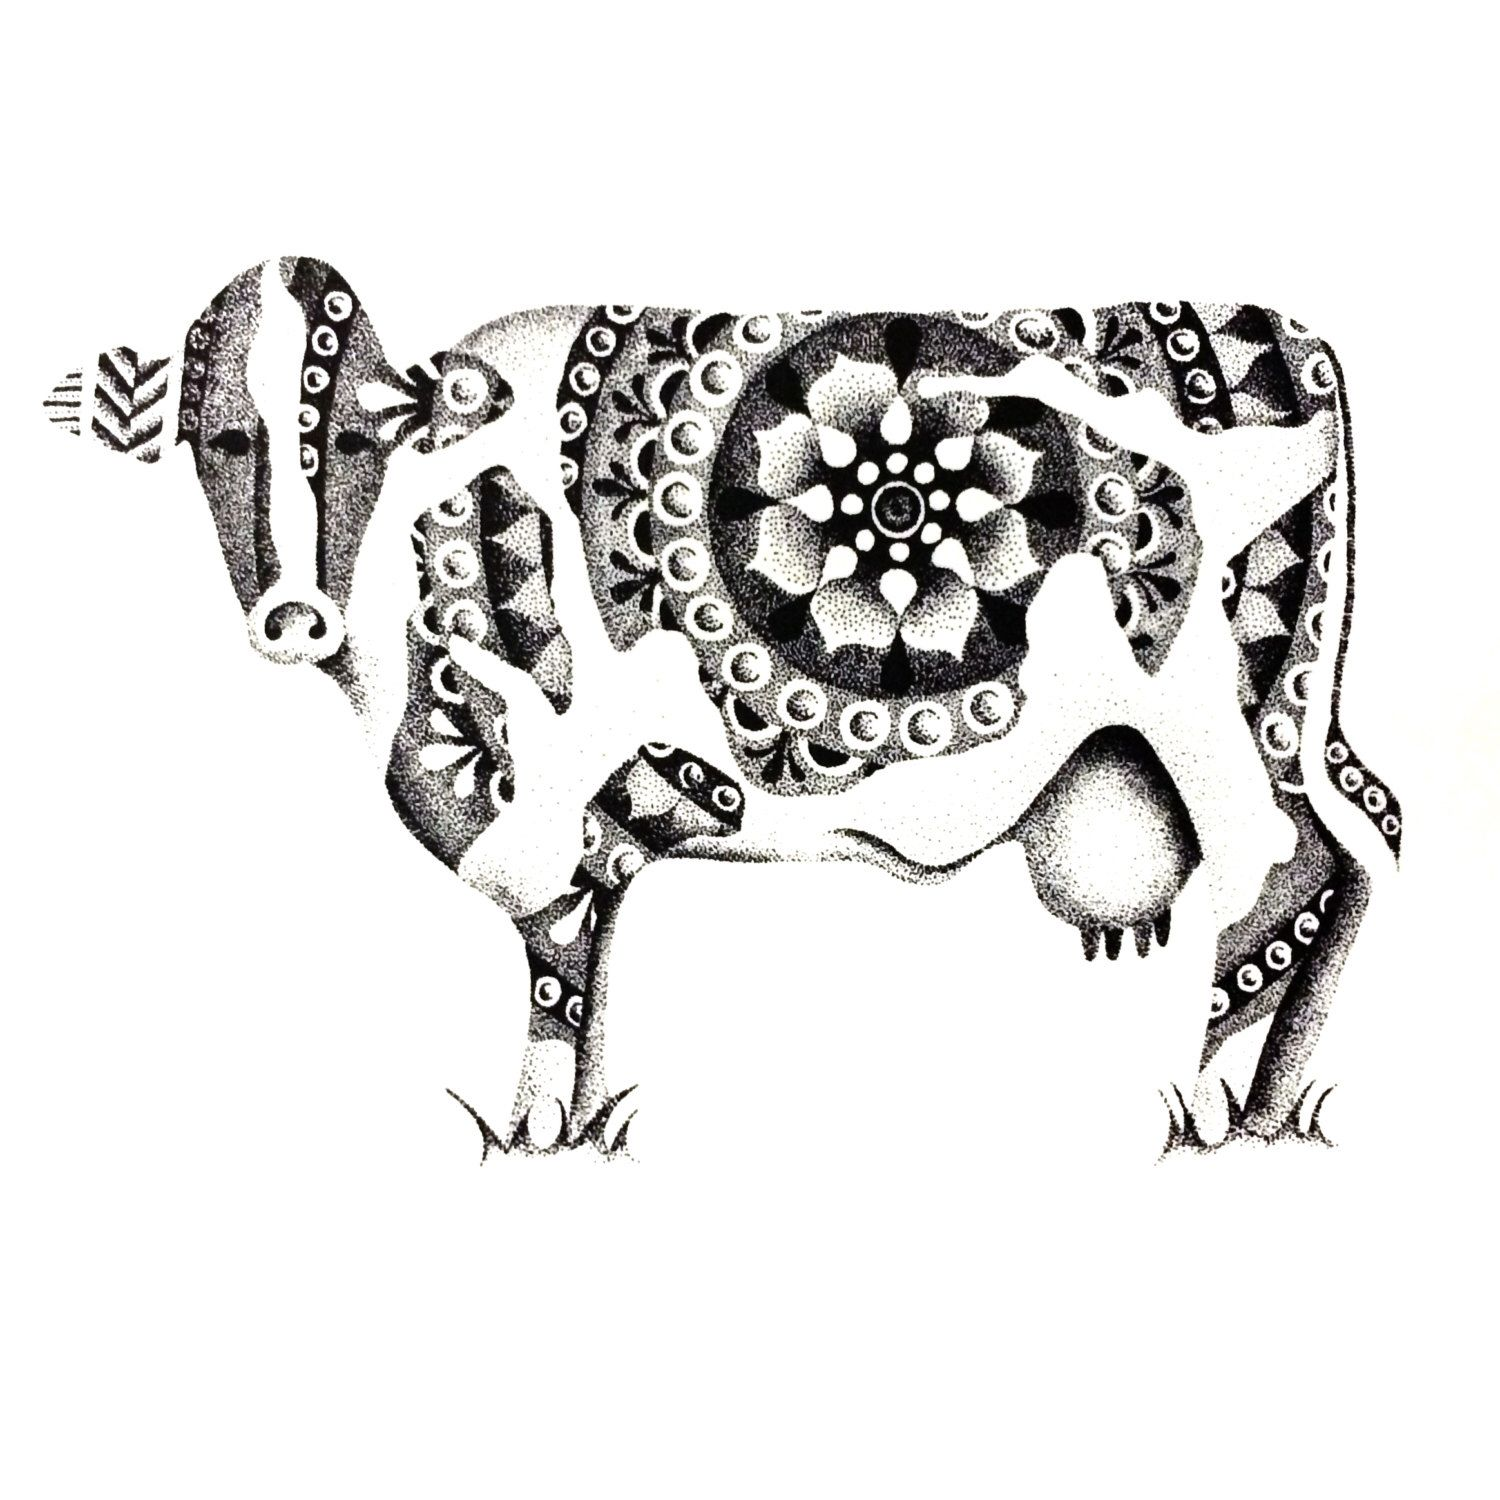 pointillism cow print by studioamylynn on etsy https www etsy